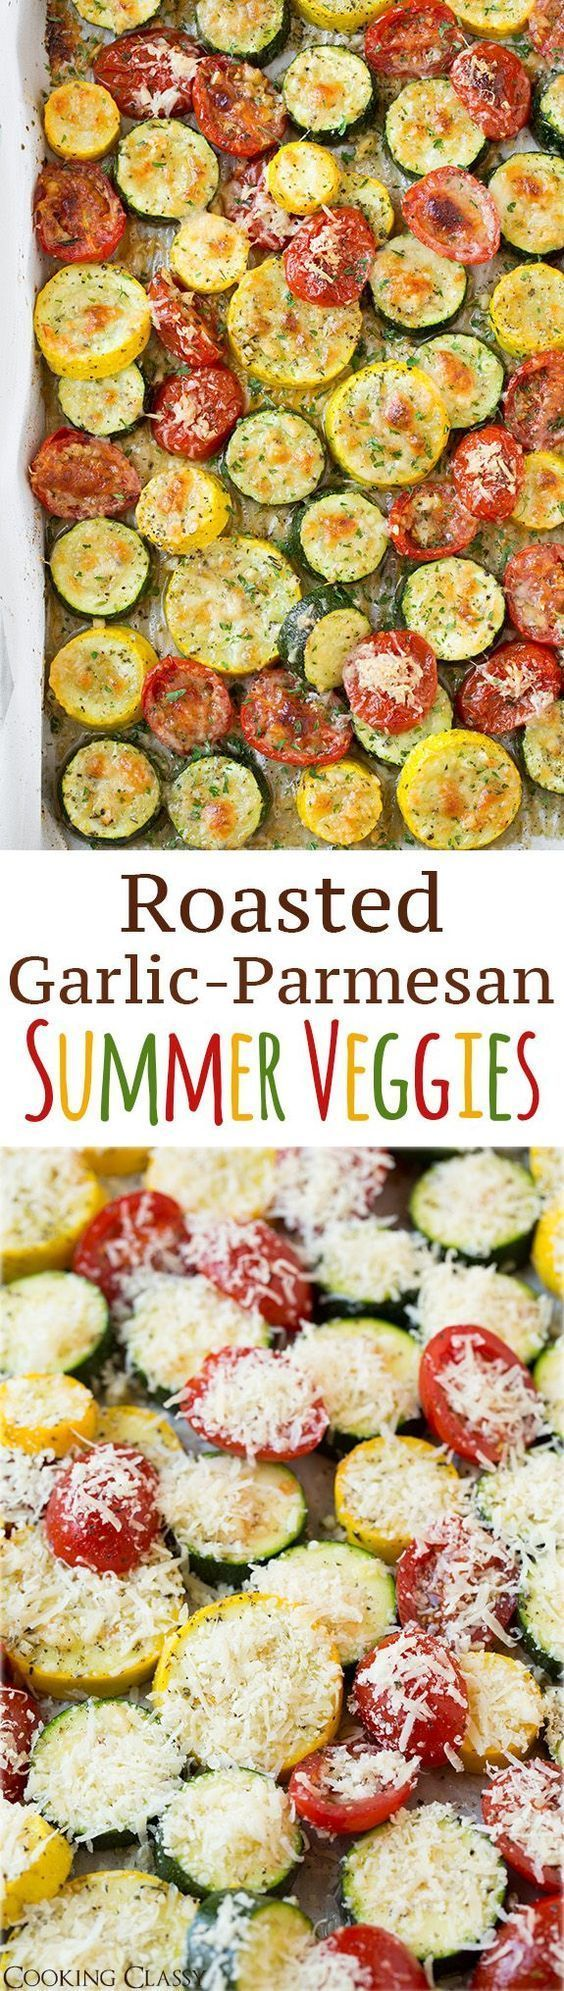 Roasted Garlic-Parmesan Zucchini, Squash and Tomatoes - this is the PERFECT use for all those fresh summer veggies! I couldn't stop eating them! Delicious flavor and so easy to make.: